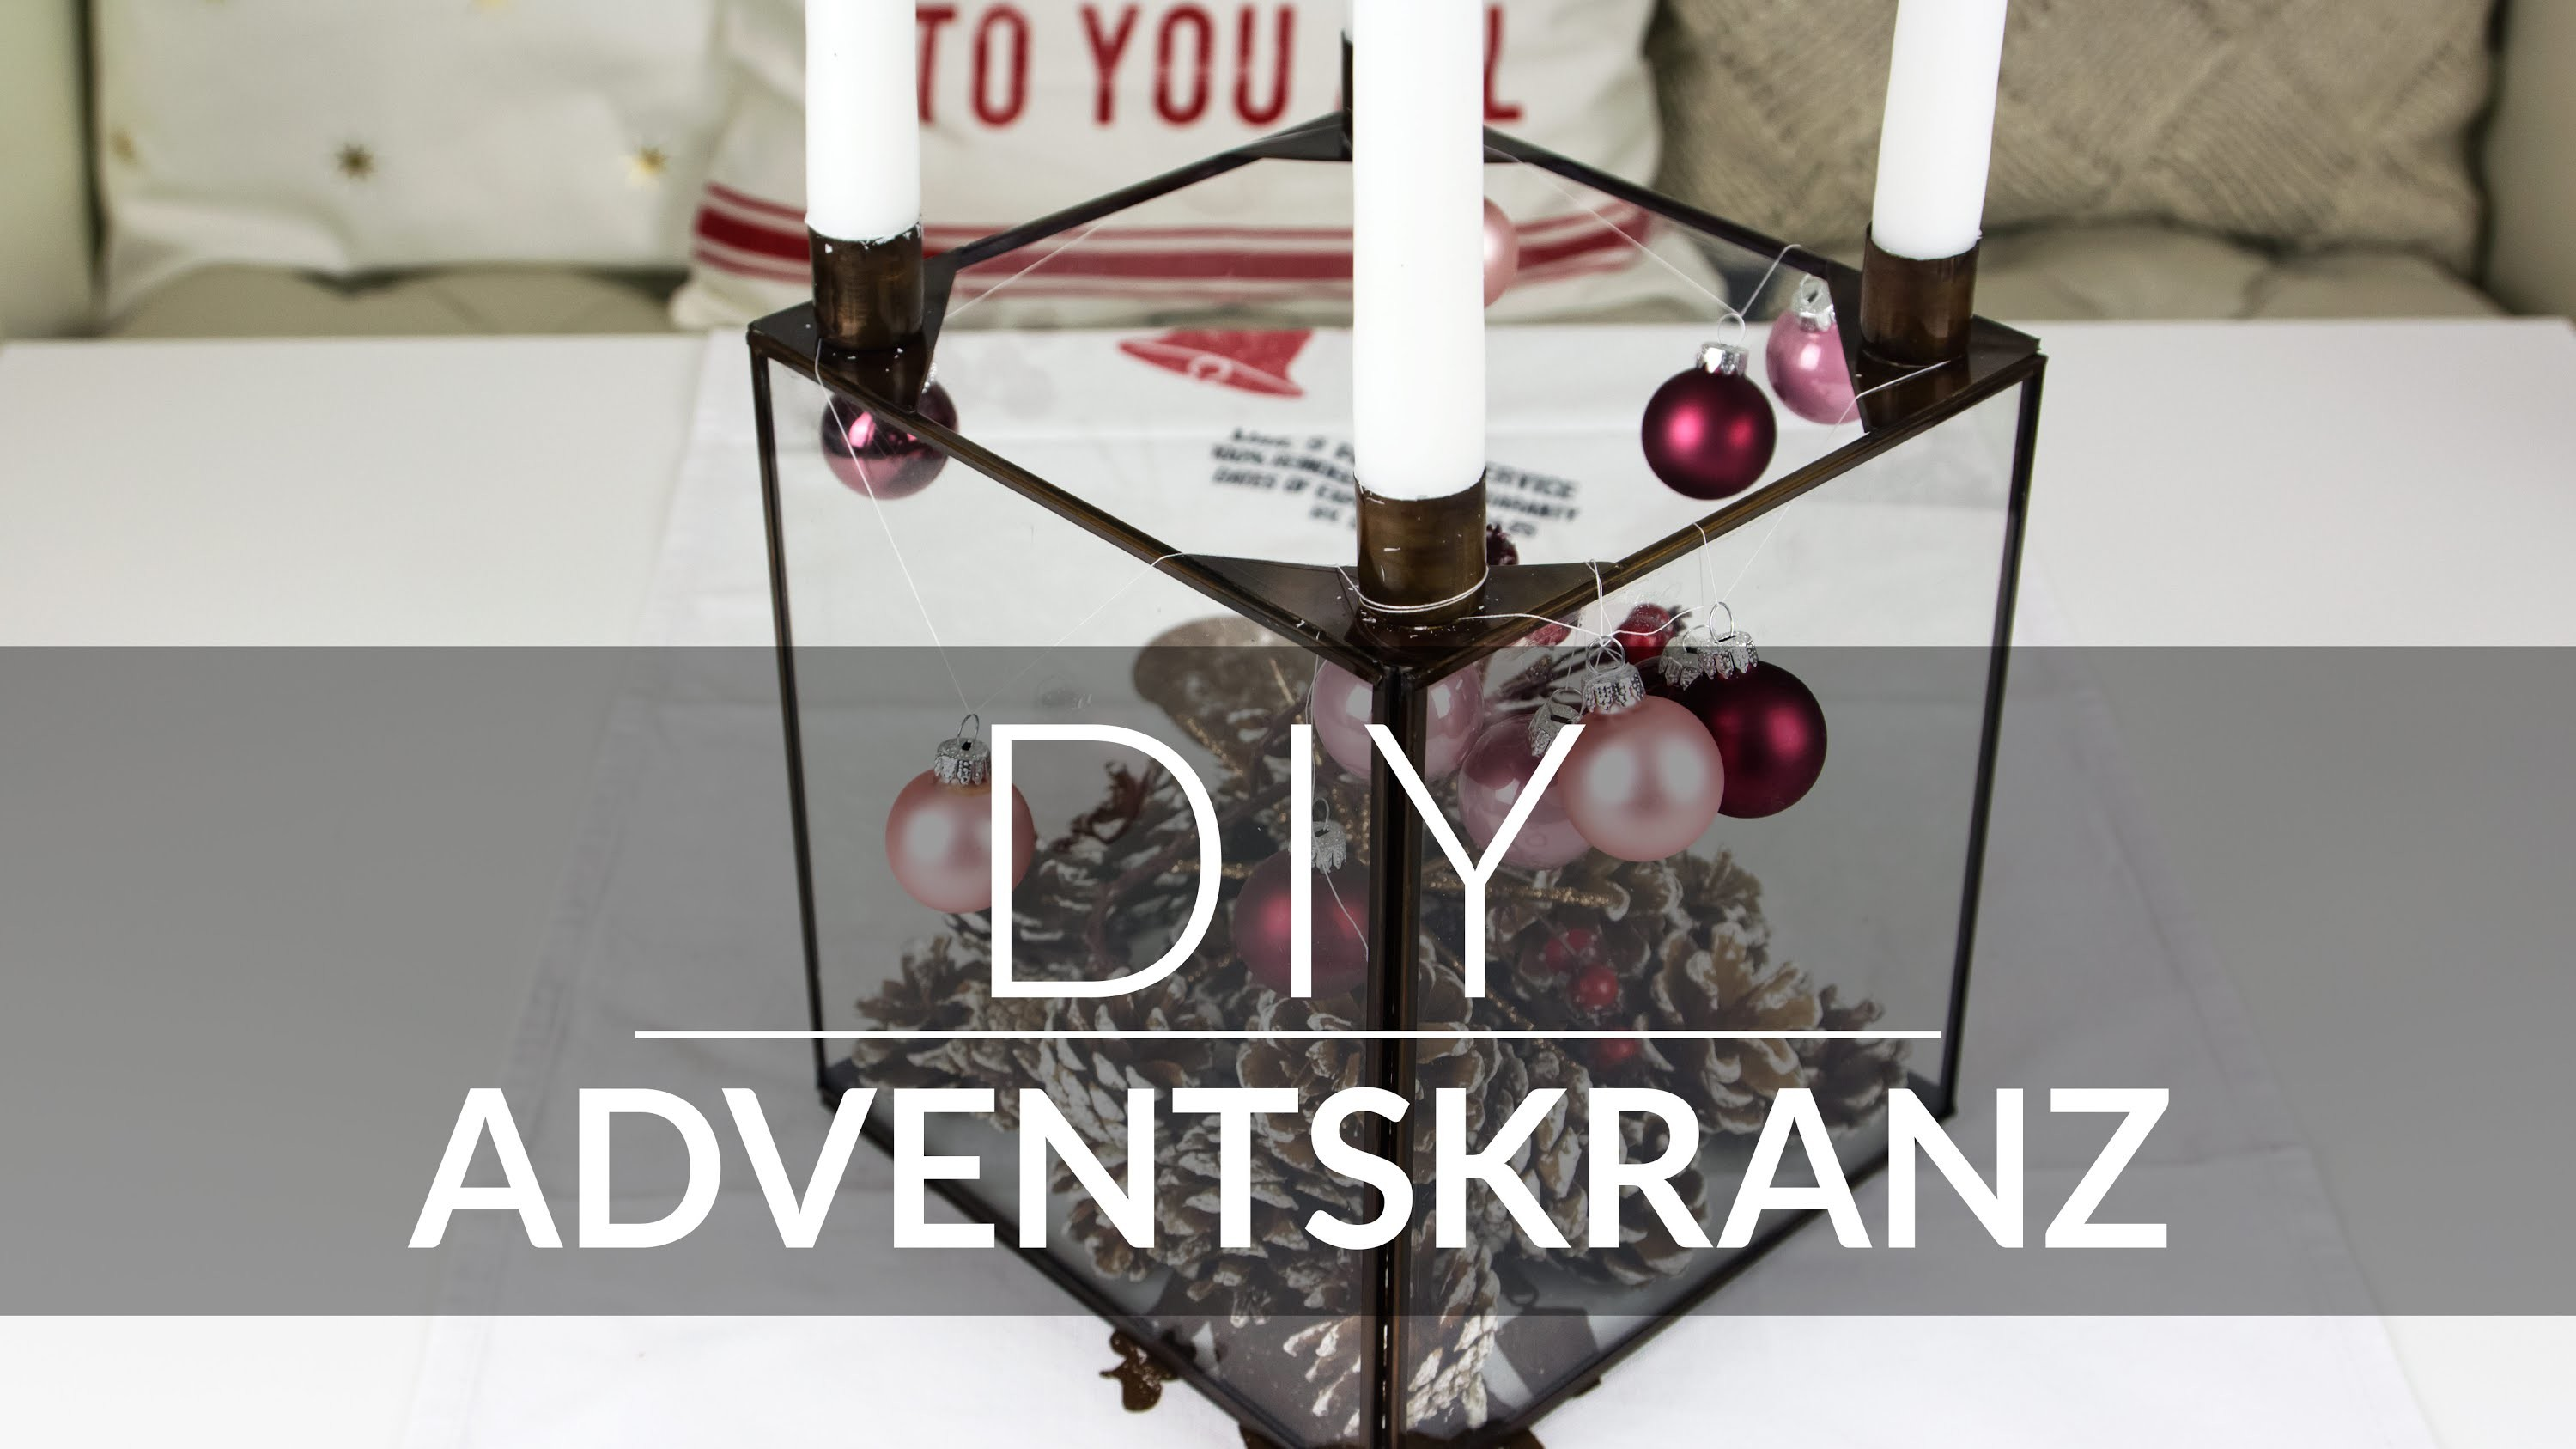 DIY - ADVENTSKRANZ. ADVENT WREATH